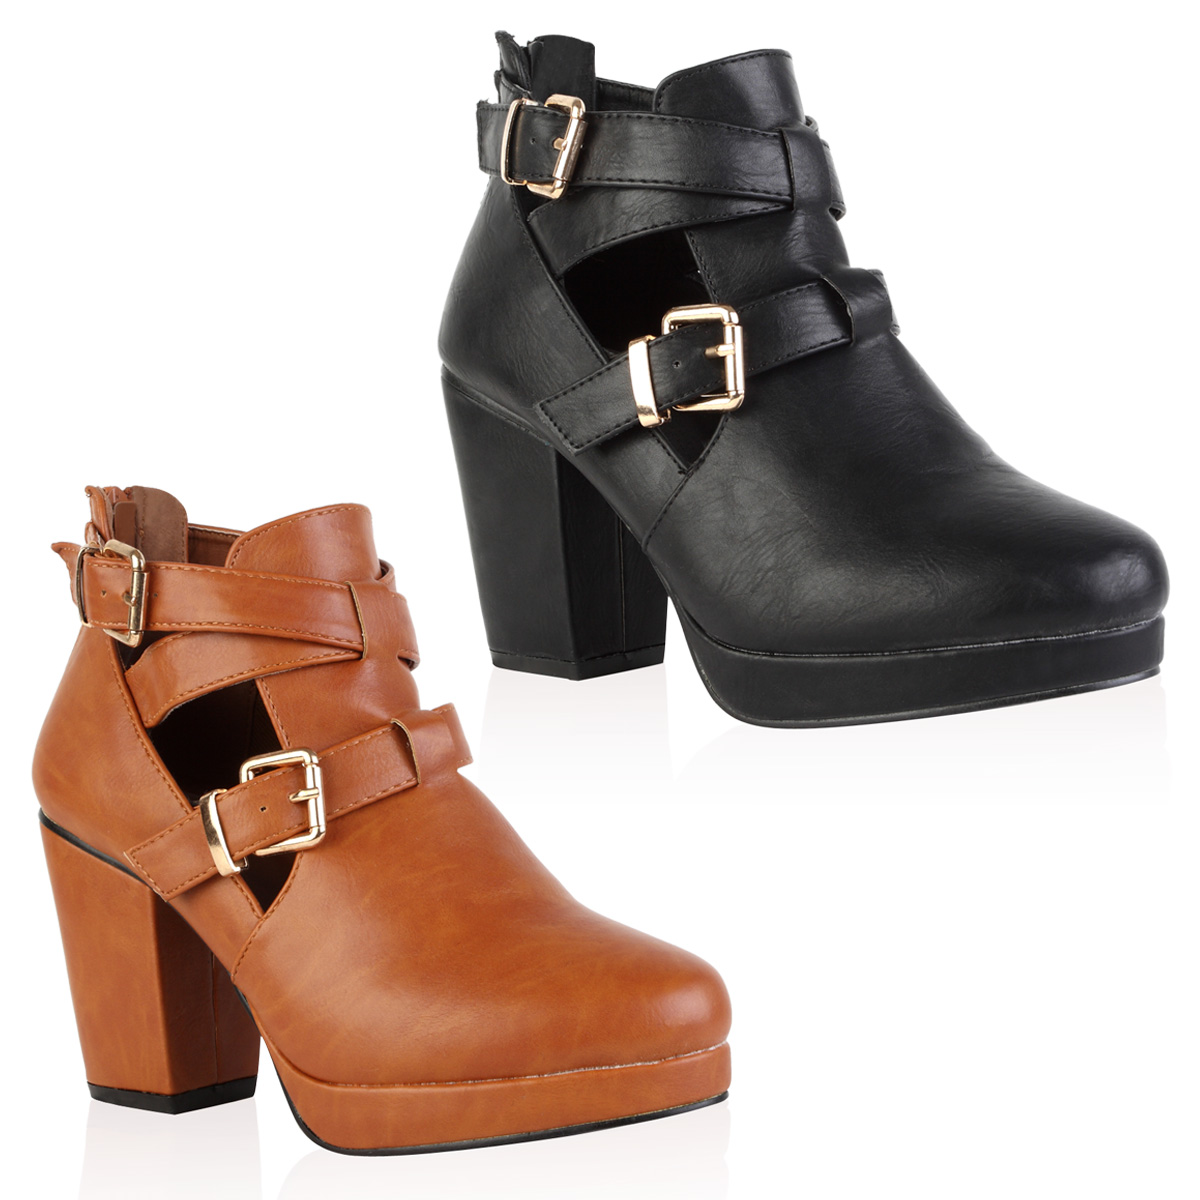 new faux leather cut out womens heel platform ankle